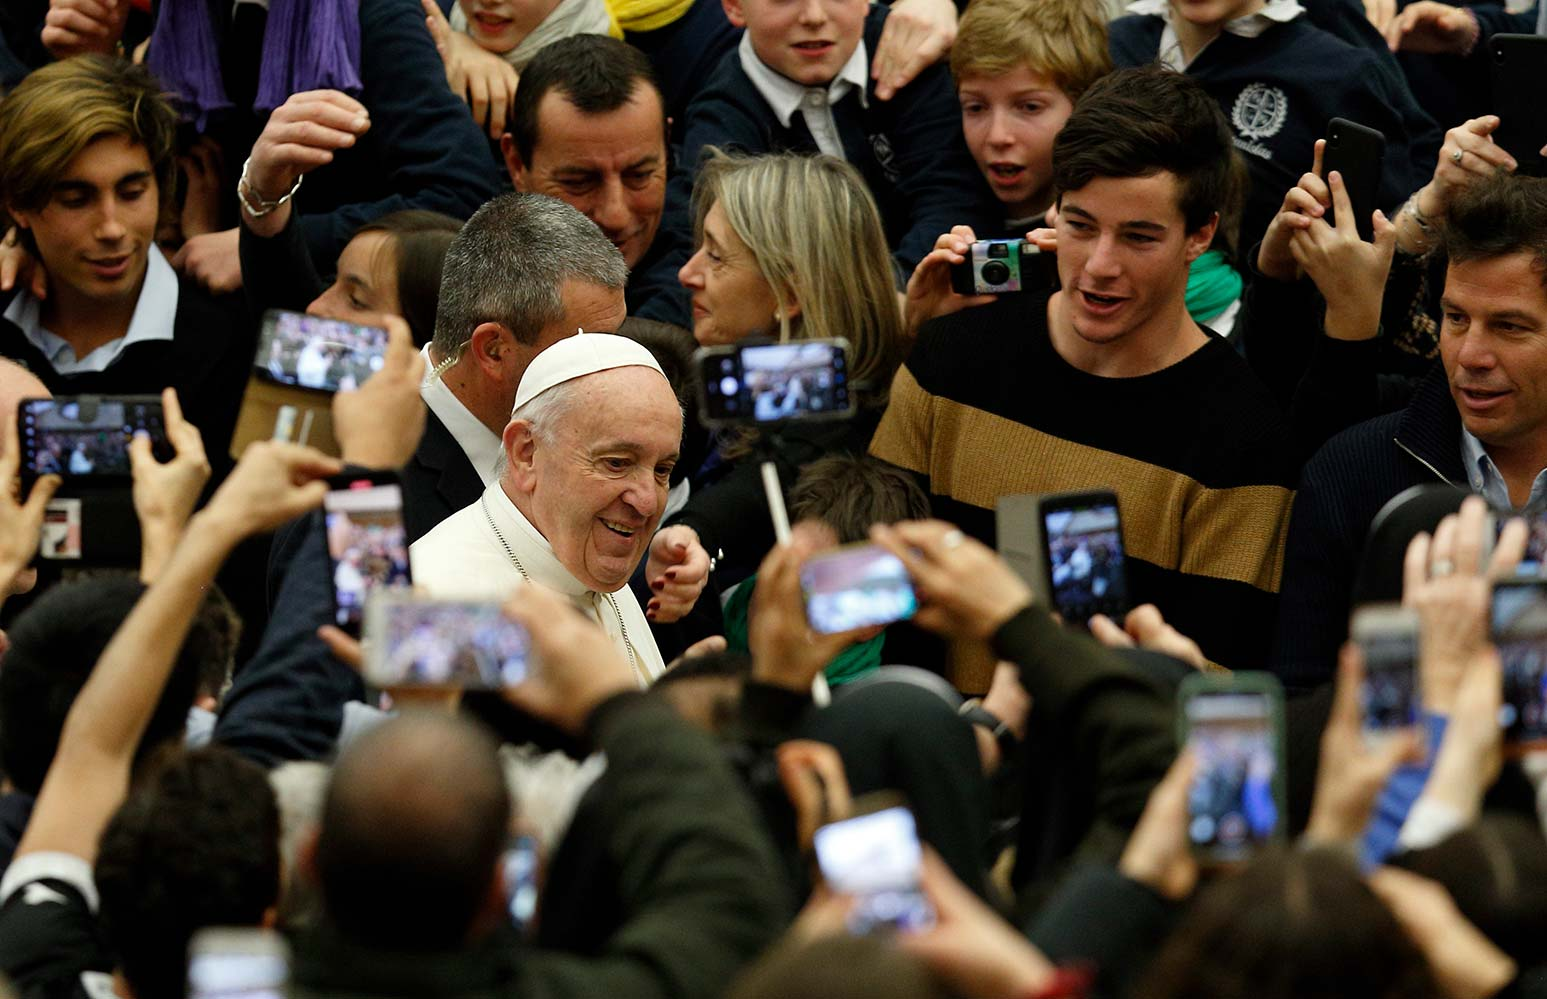 People capture images on their phones as Pope Francis arrives to lead his general audience in Paul VI hall at the Vatican Feb. 5. (CNS photo/Paul Haring)